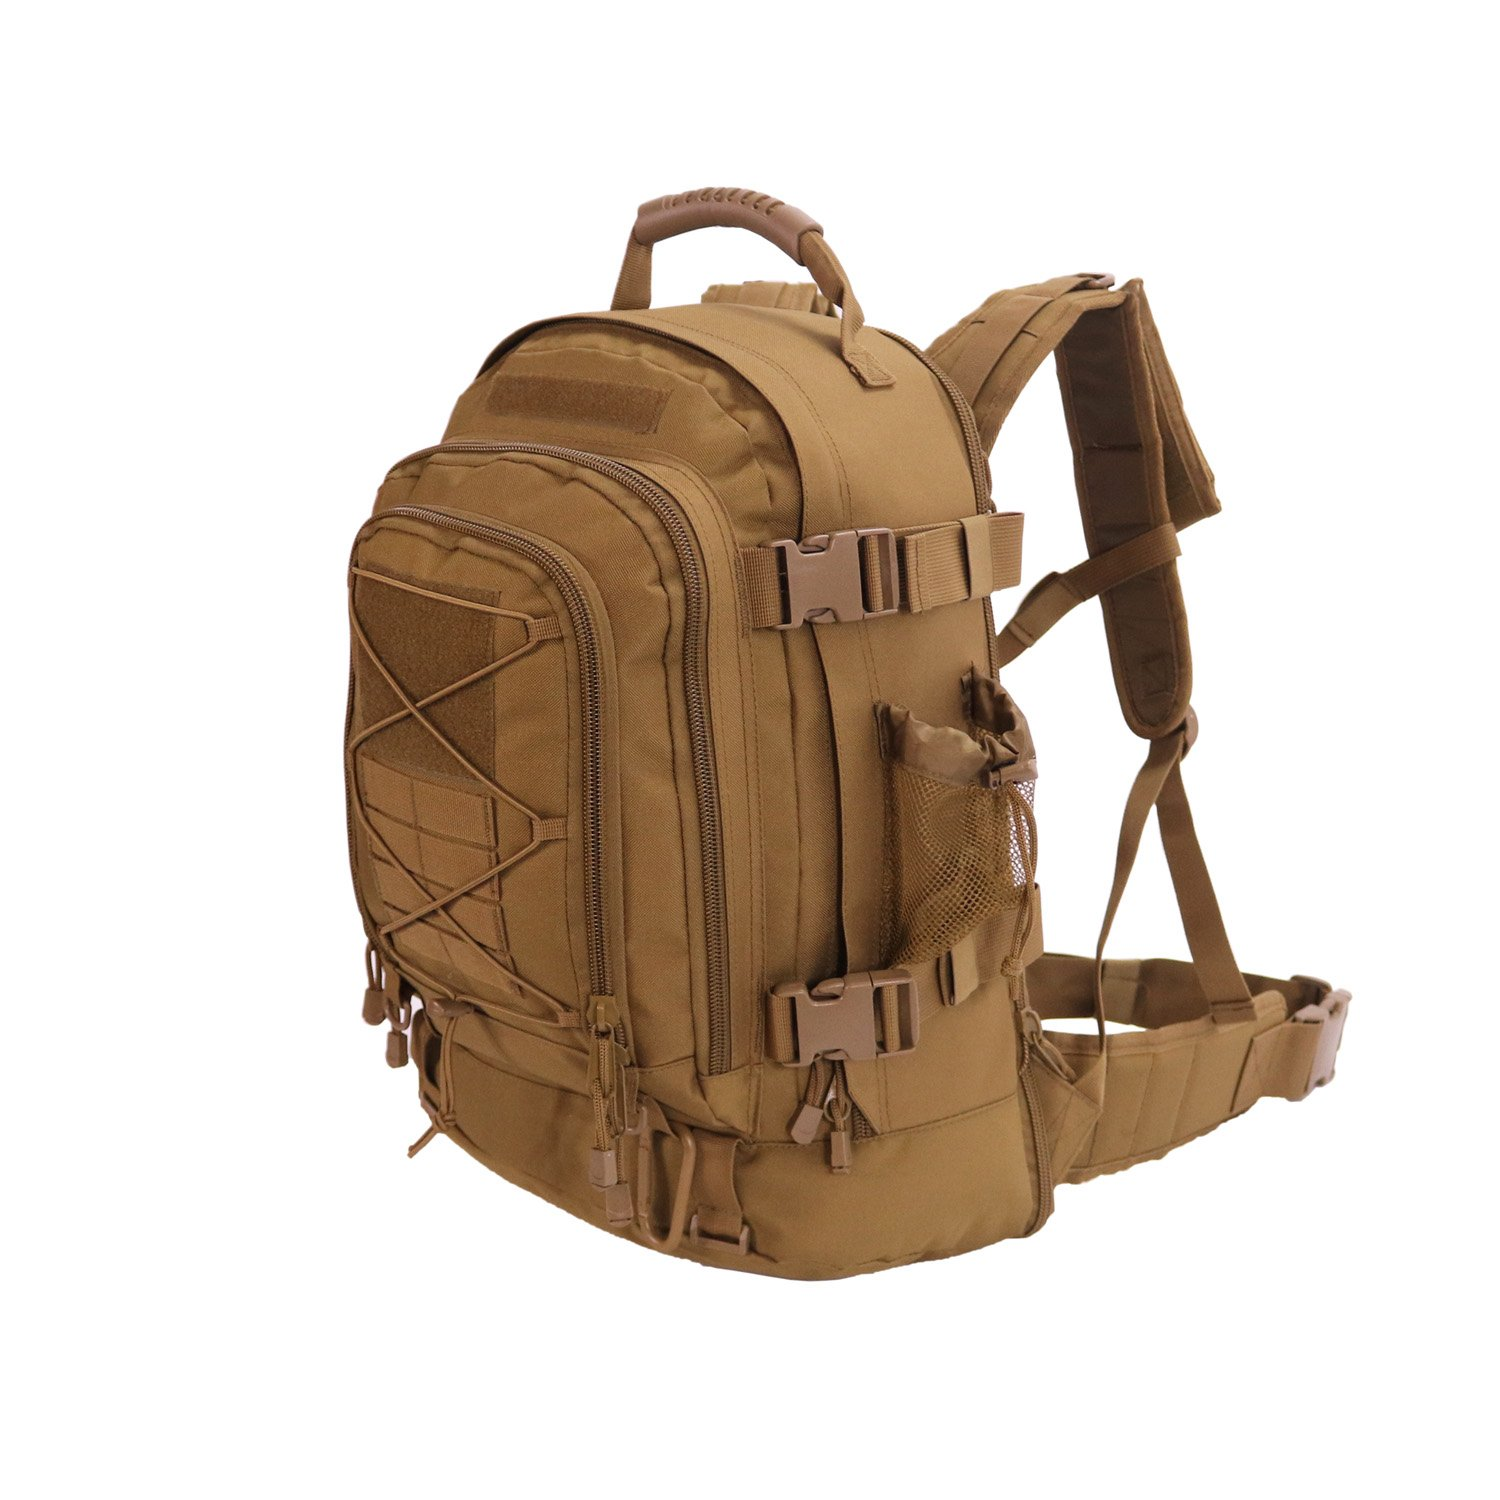 ARMYCAMOUSA 40L - 64 L Outdoor 3 Day Expandable Backpack for Gym Sport Hiking Camping Trekking Travel Military & Tactical,Bug Out Bag